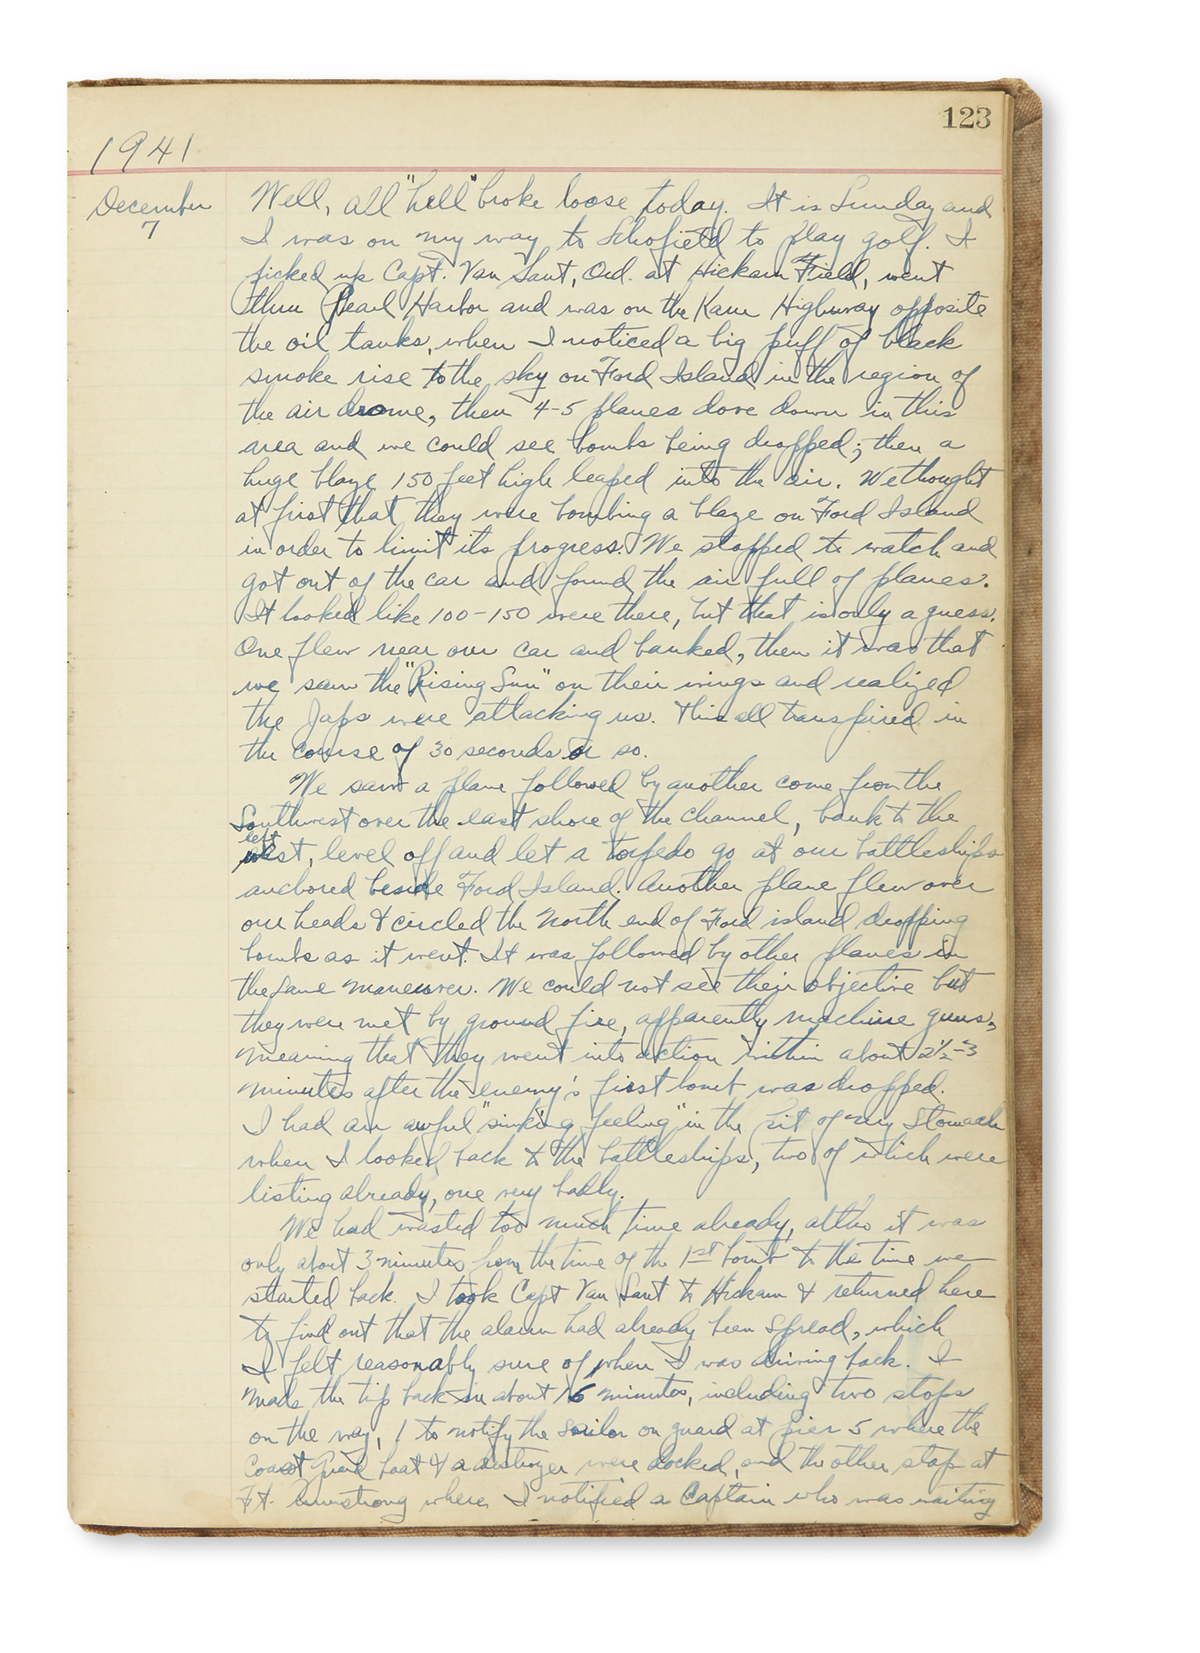 (WORLD WAR TWO). Manuscript history of an Hawaiian military base, with an appended eyewitness account of the attack on Pearl Harbor.